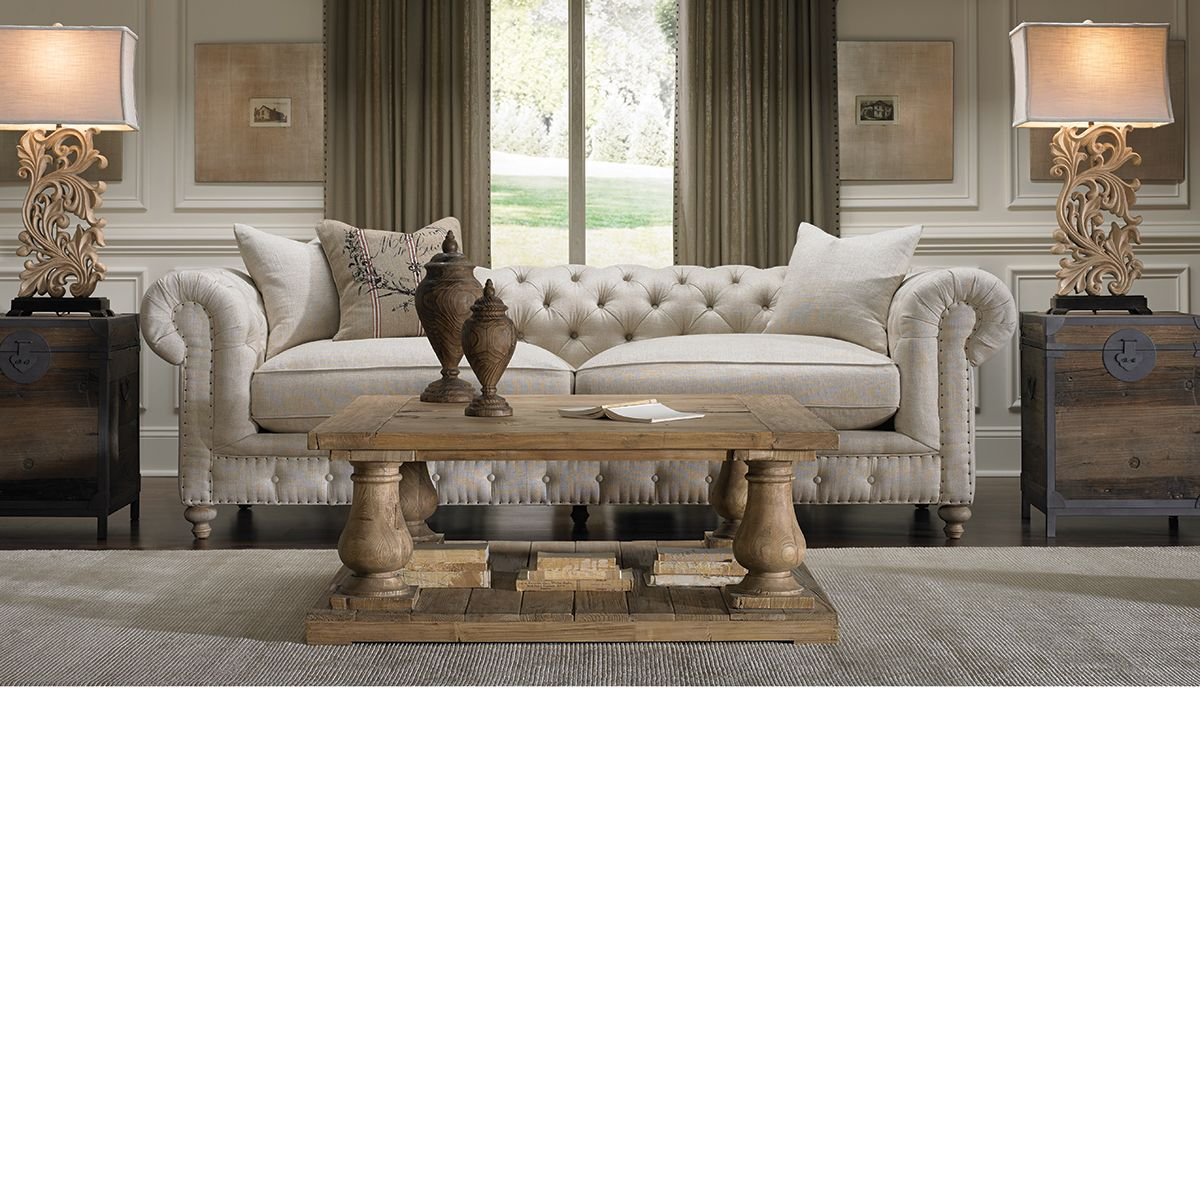 The Dump Luxe Furniture Outlet Lambrisering